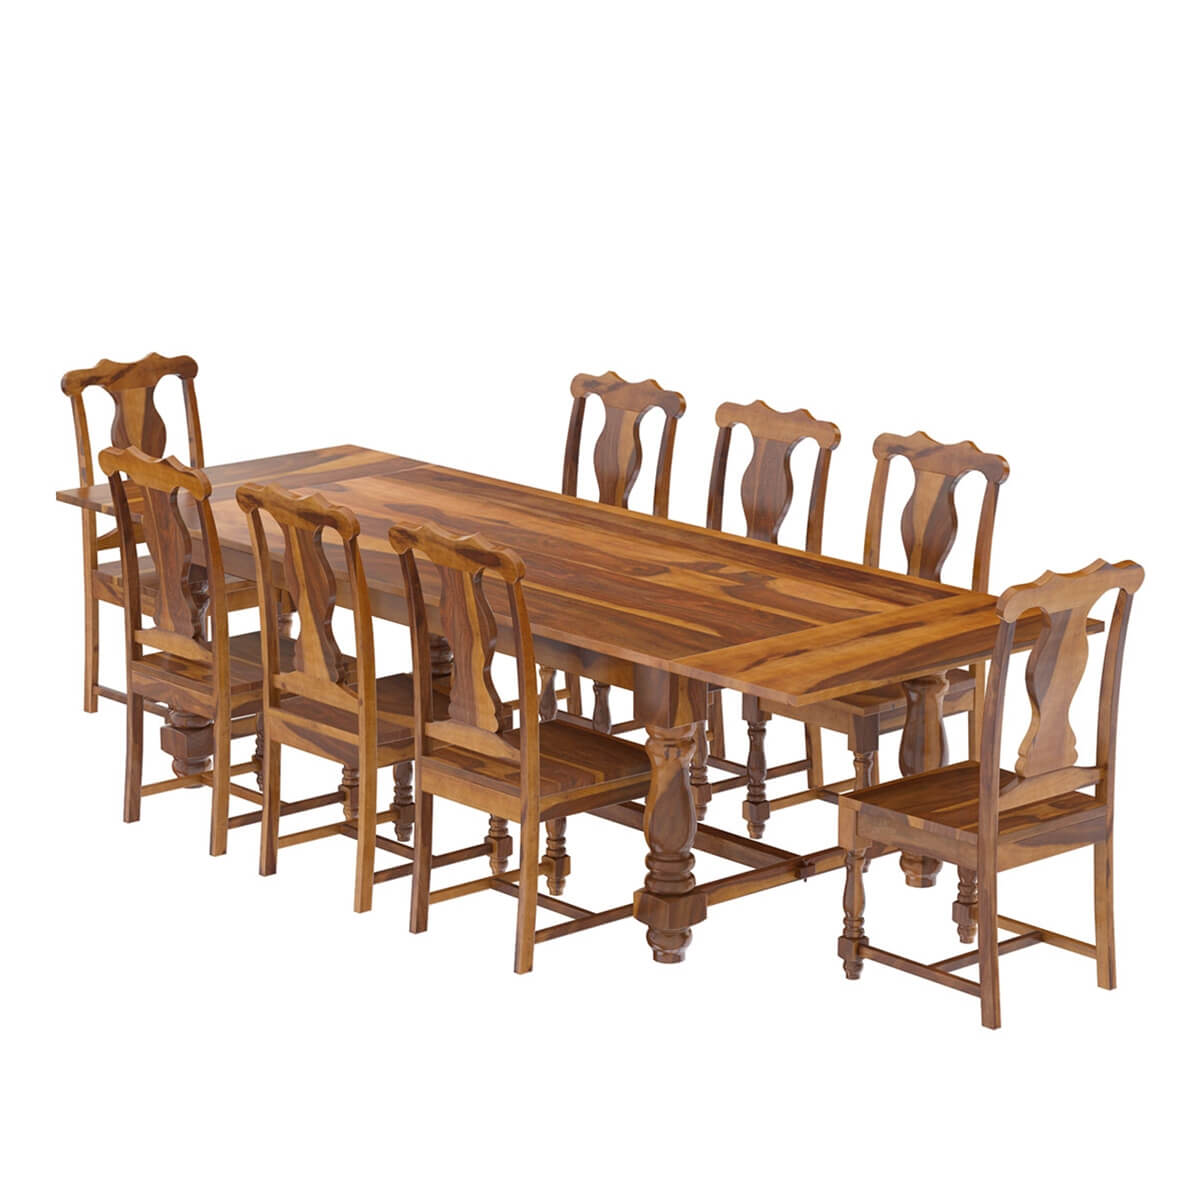 Rustic solid wood dining table chair set furniture w for Furniture dining table